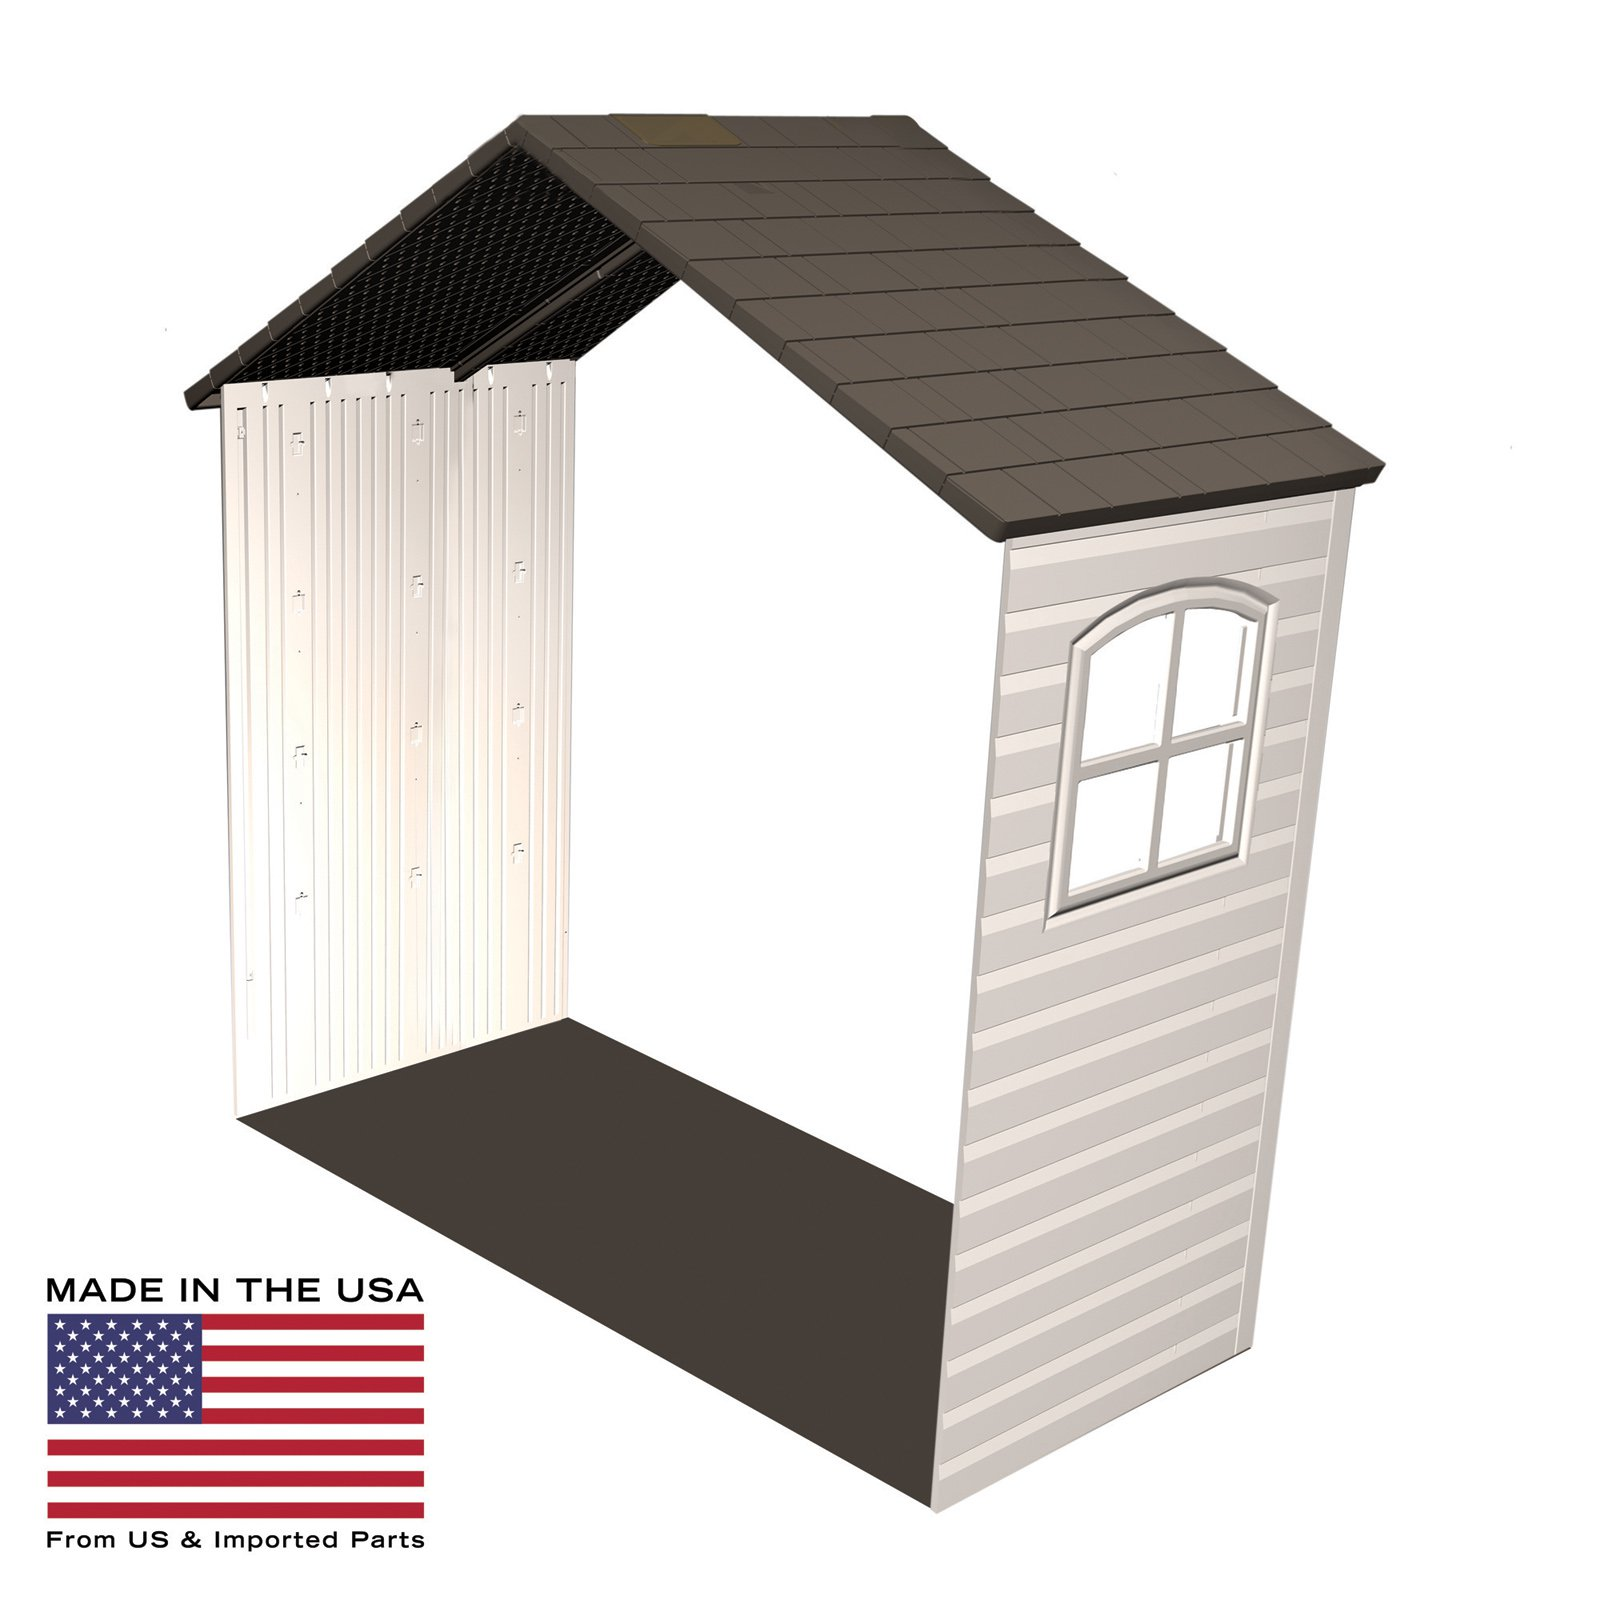 Lifetime 8 x 2.5 ft. Outdoor Storage Shed Expansion Kit with One Window